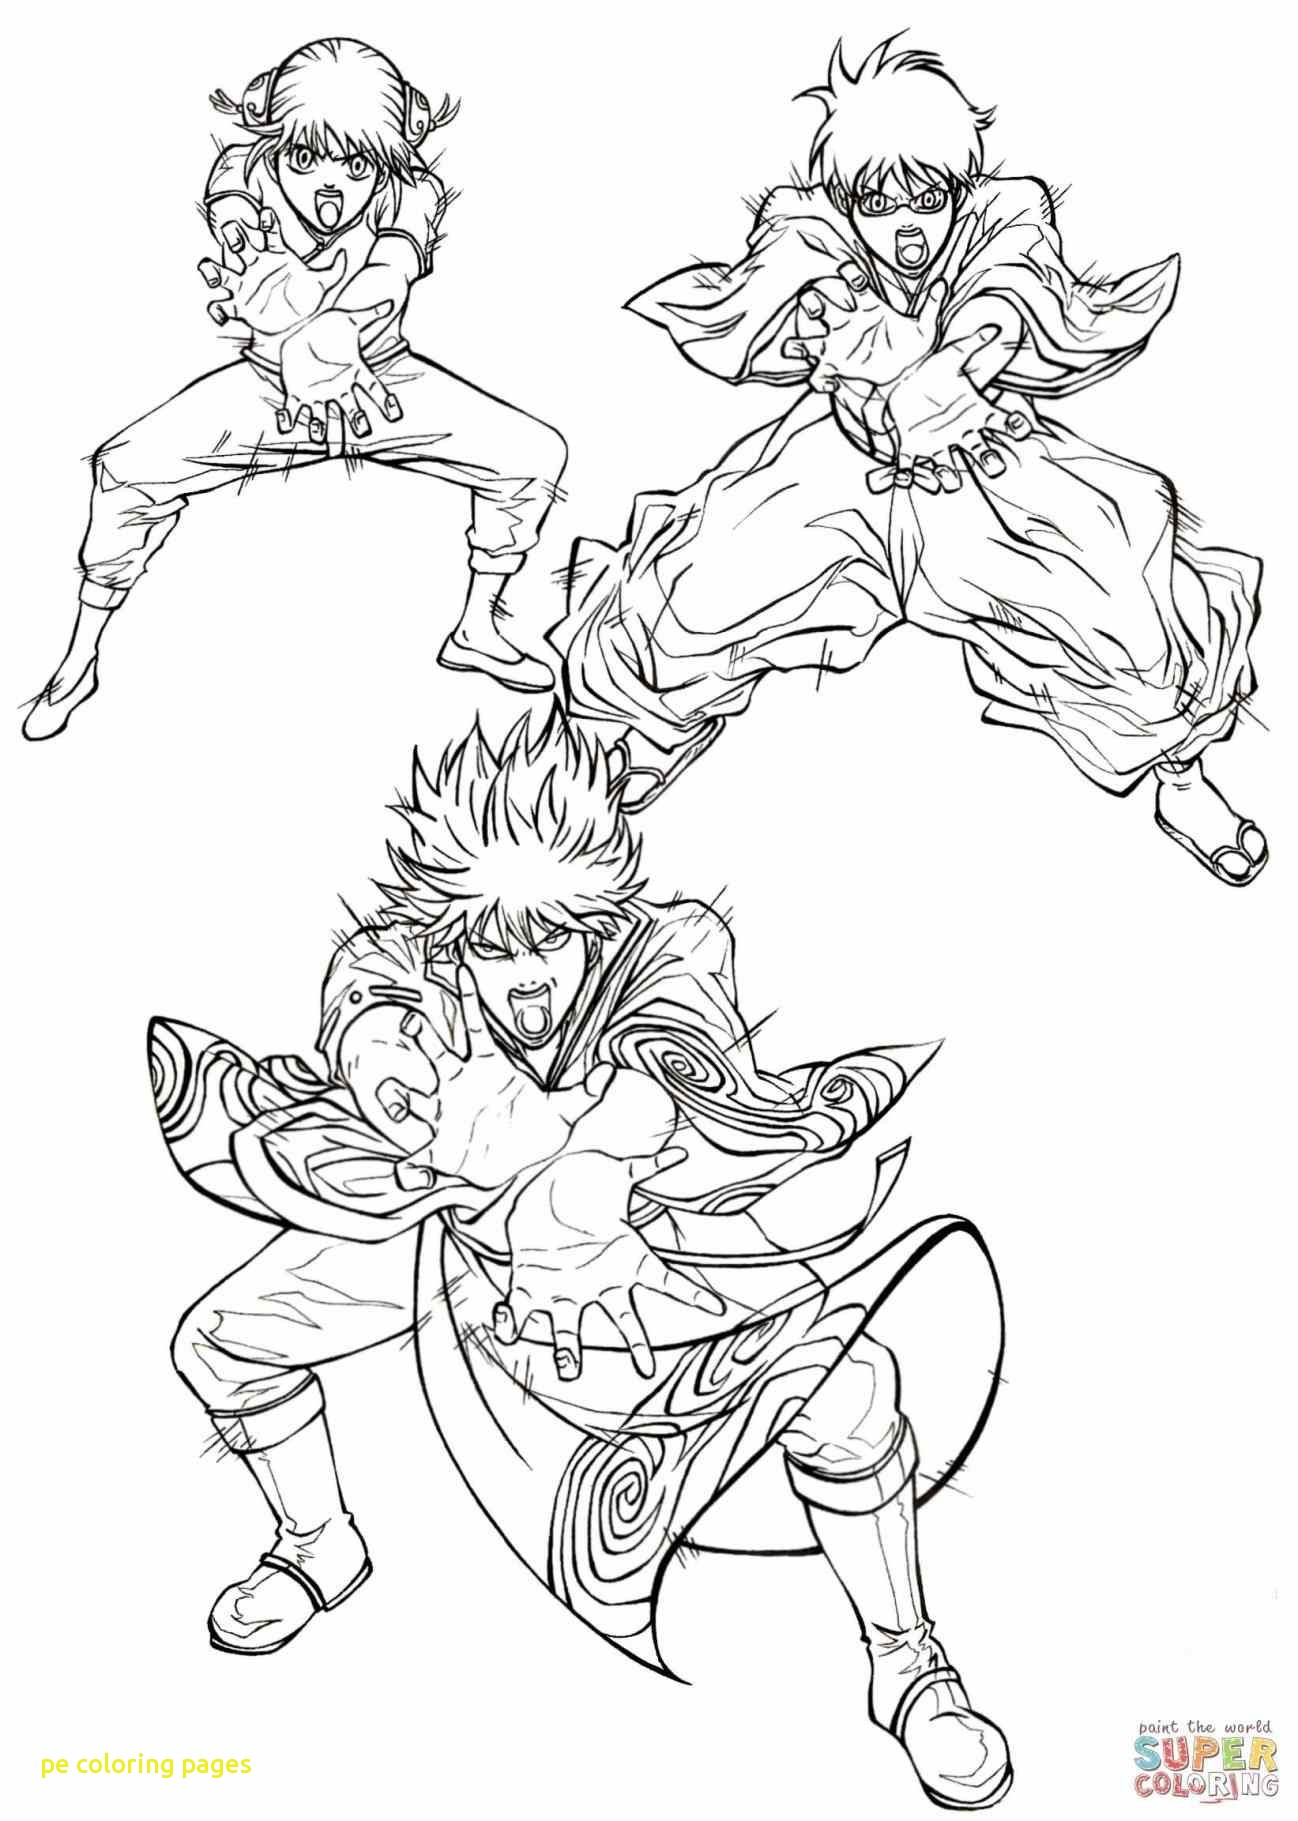 1298x1821 New Pe Coloring Pages With Physical Education Coloring Pages